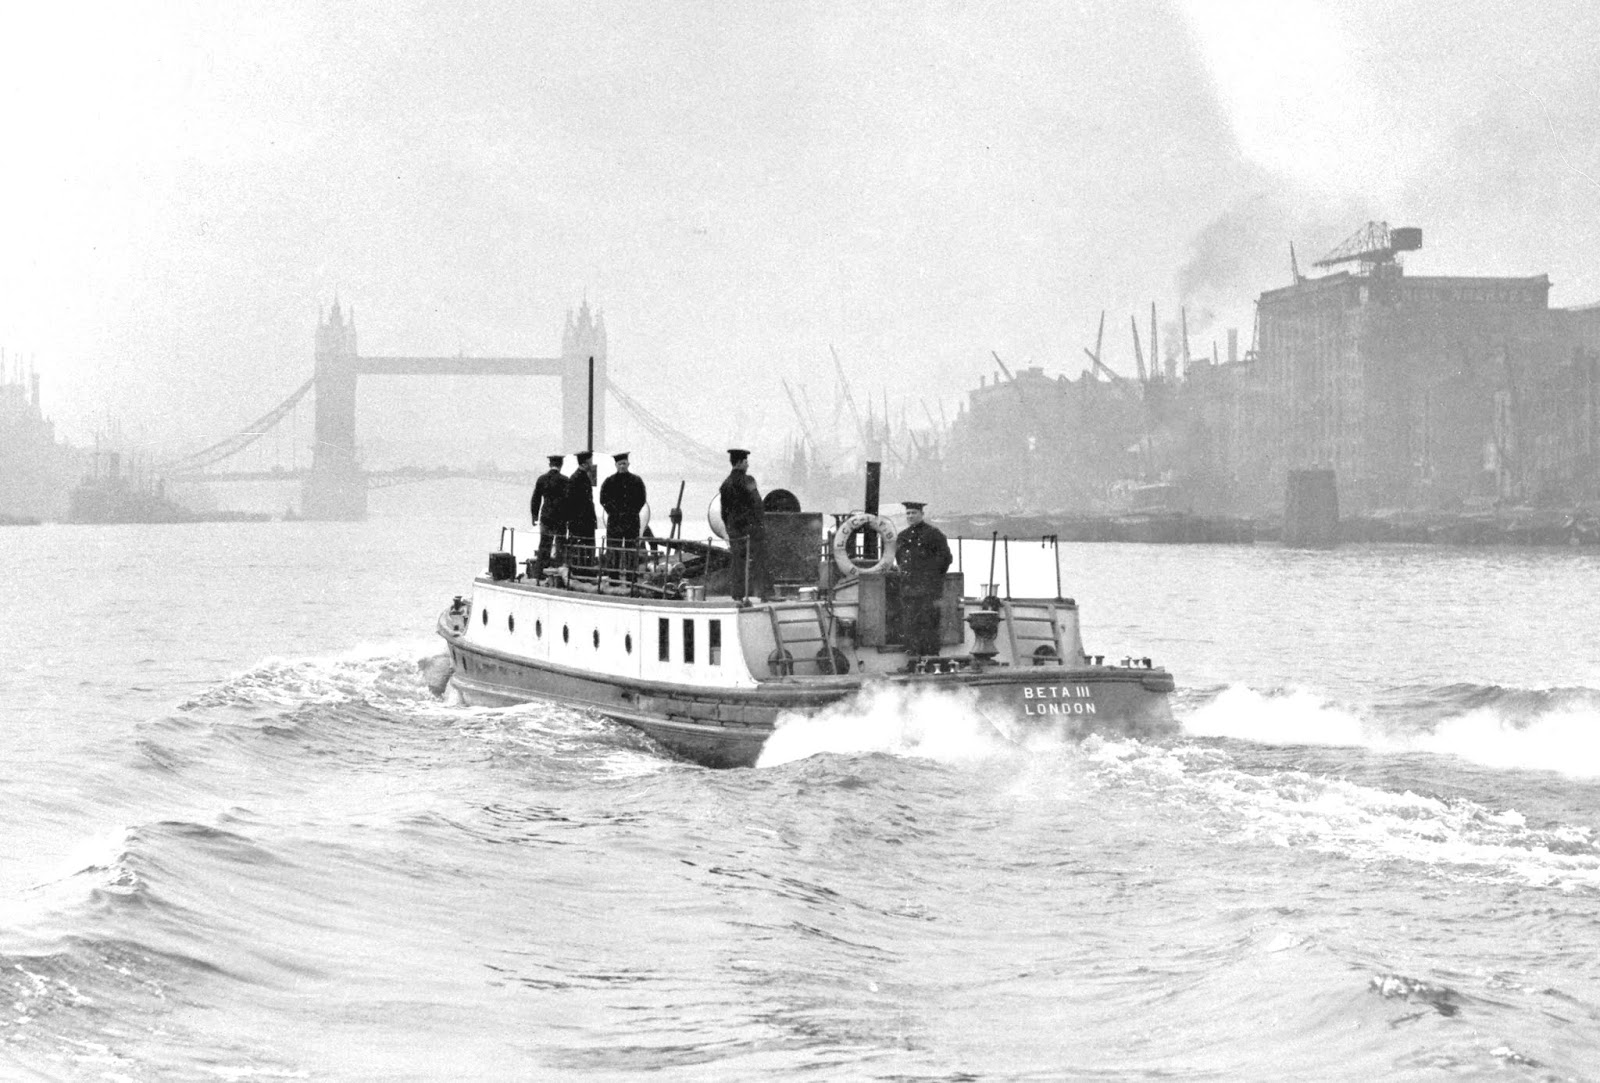 Beta III fireboat on the River Thames